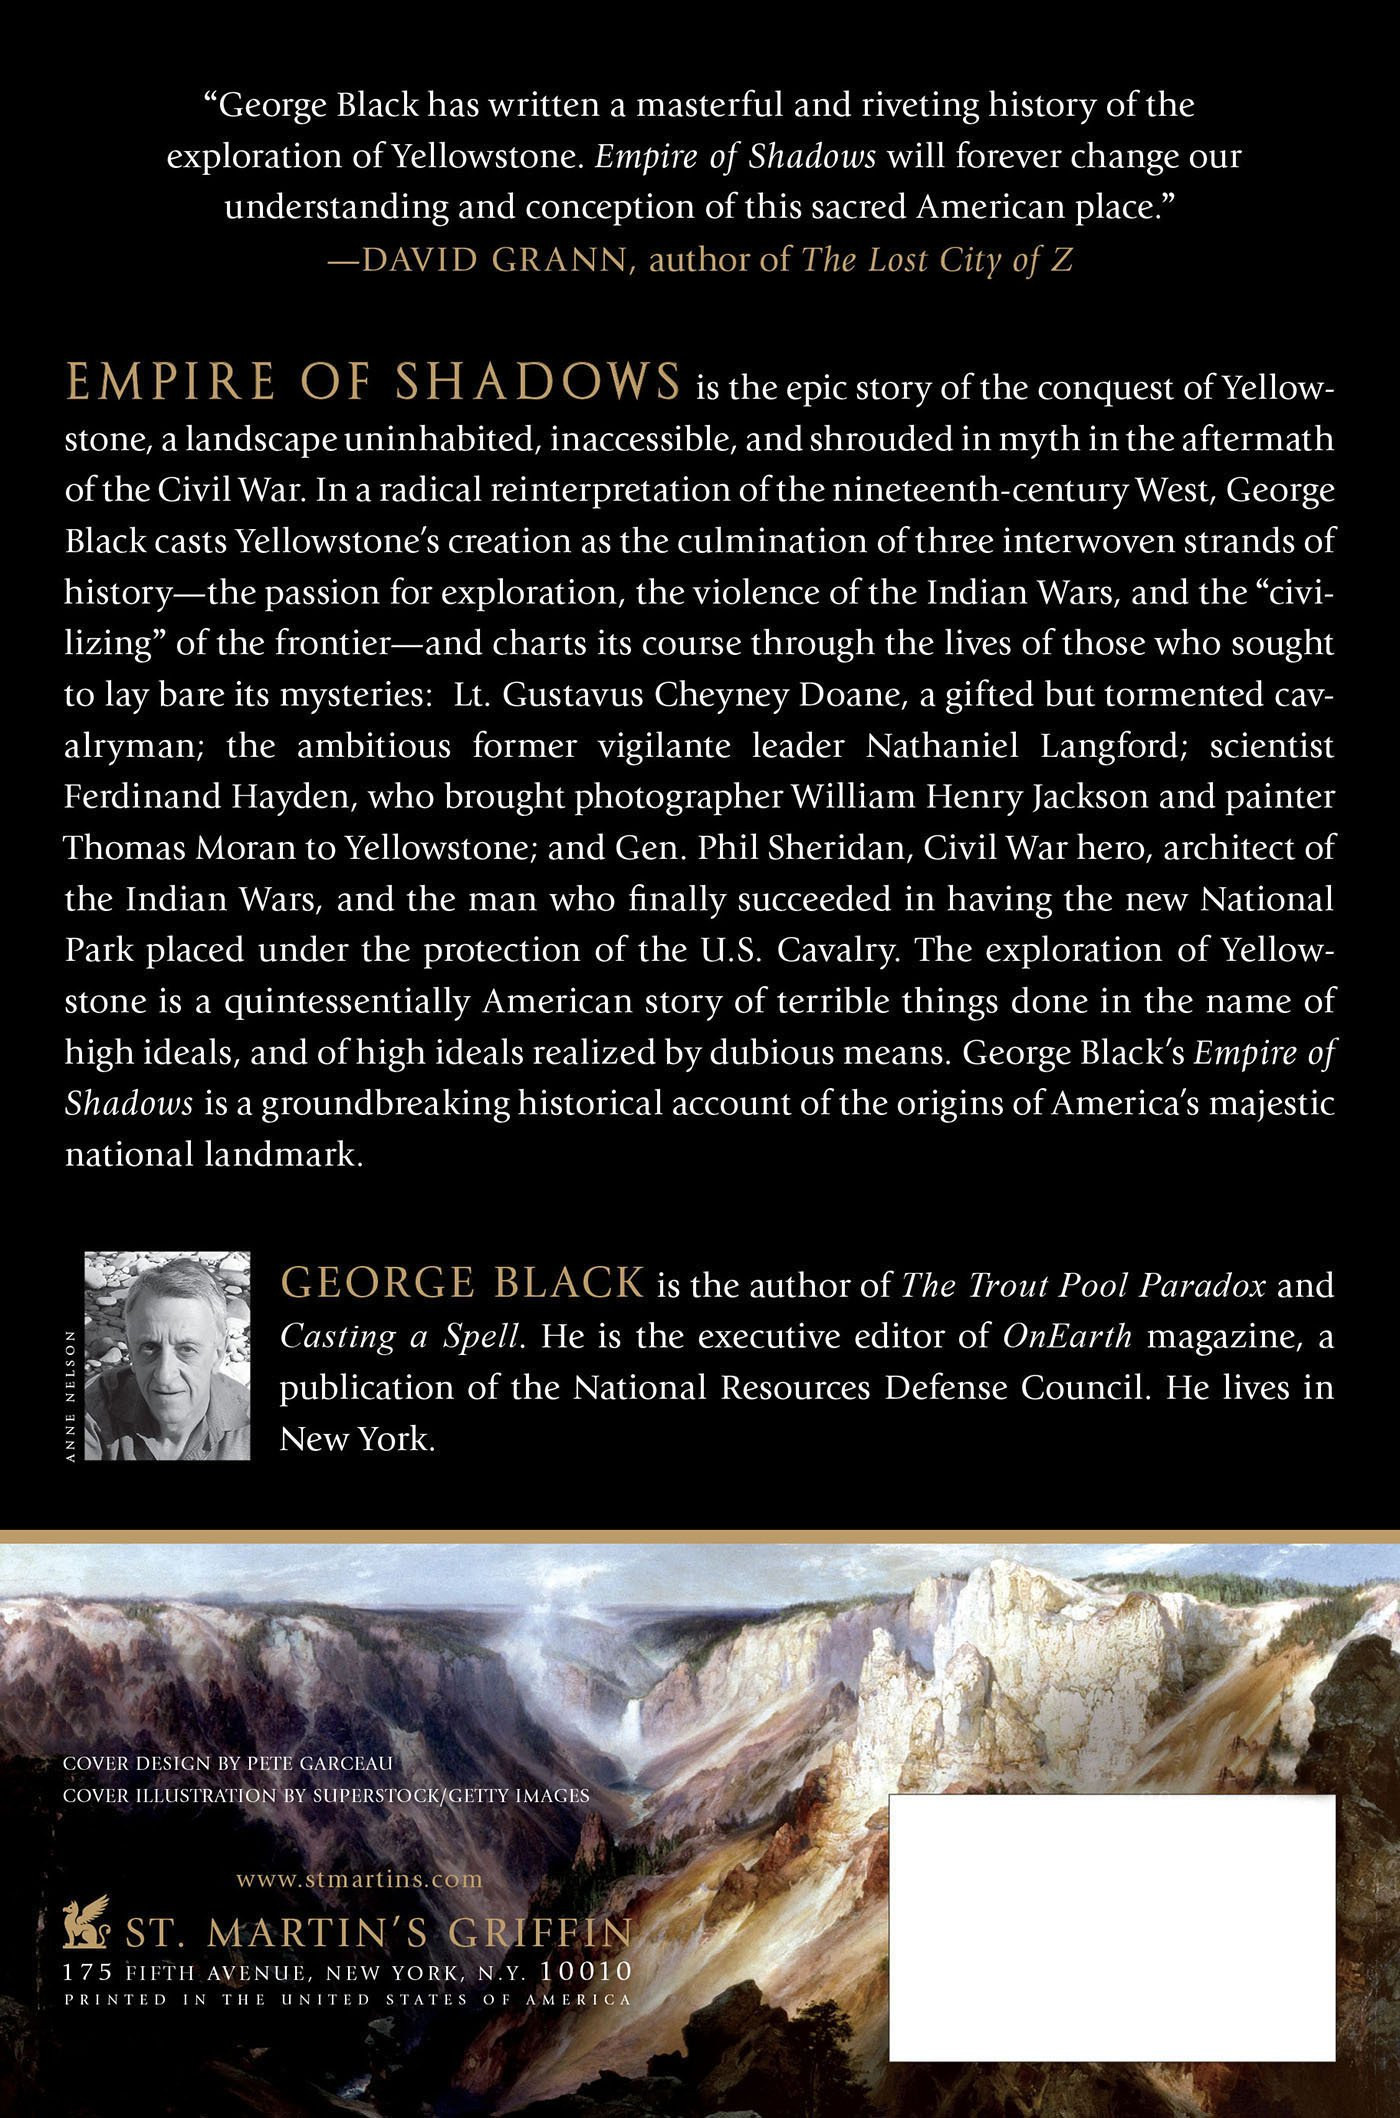 Empire of Shadows: The Epic Story of Yellowstone: George Black: 9781250023209: Amazon.com: Books